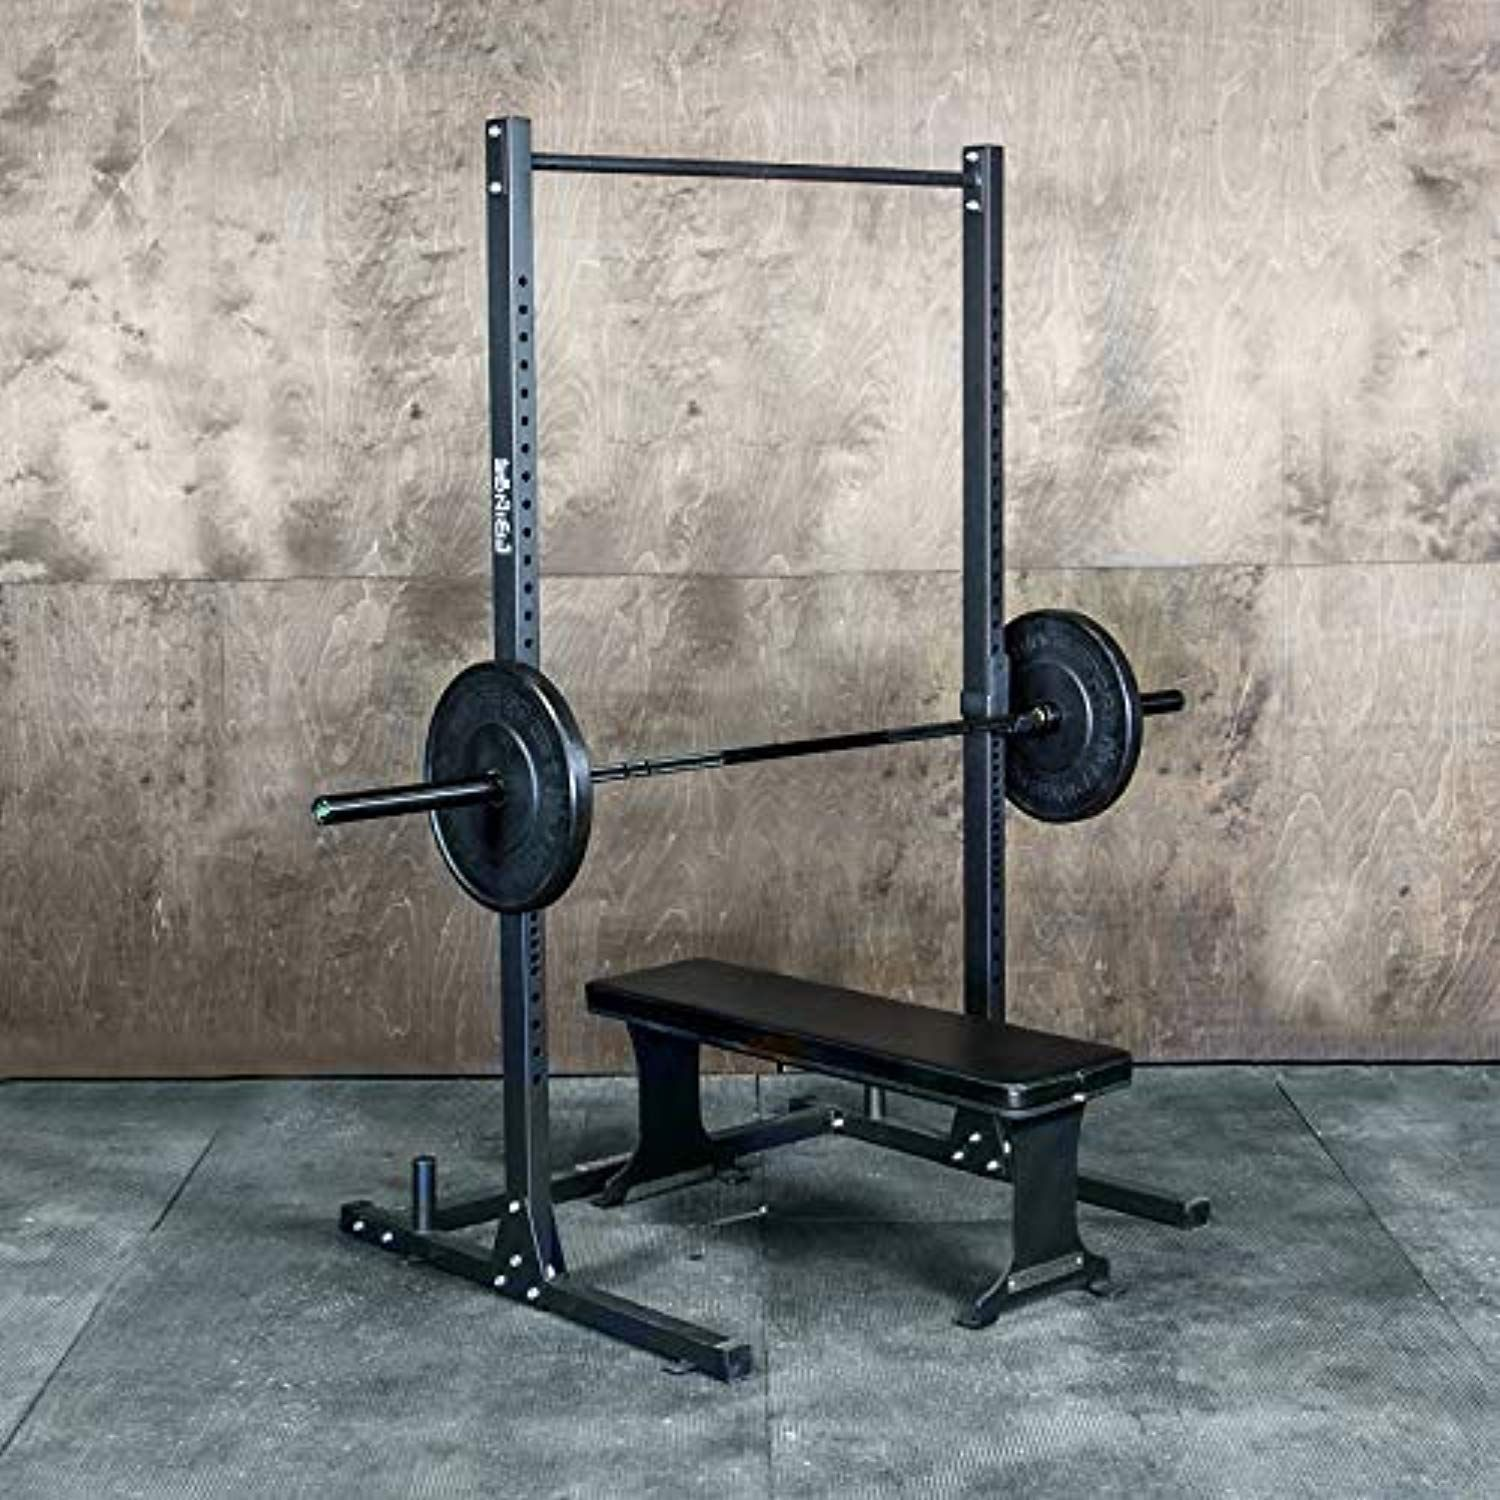 Squat Rack With Pullup Bar 4 X 4 Footprint 450lb Weight Capacity Weightlifting Equipment For Squat Bench Pullups Exerc Pull Up Bar Squat Rack Pull Ups